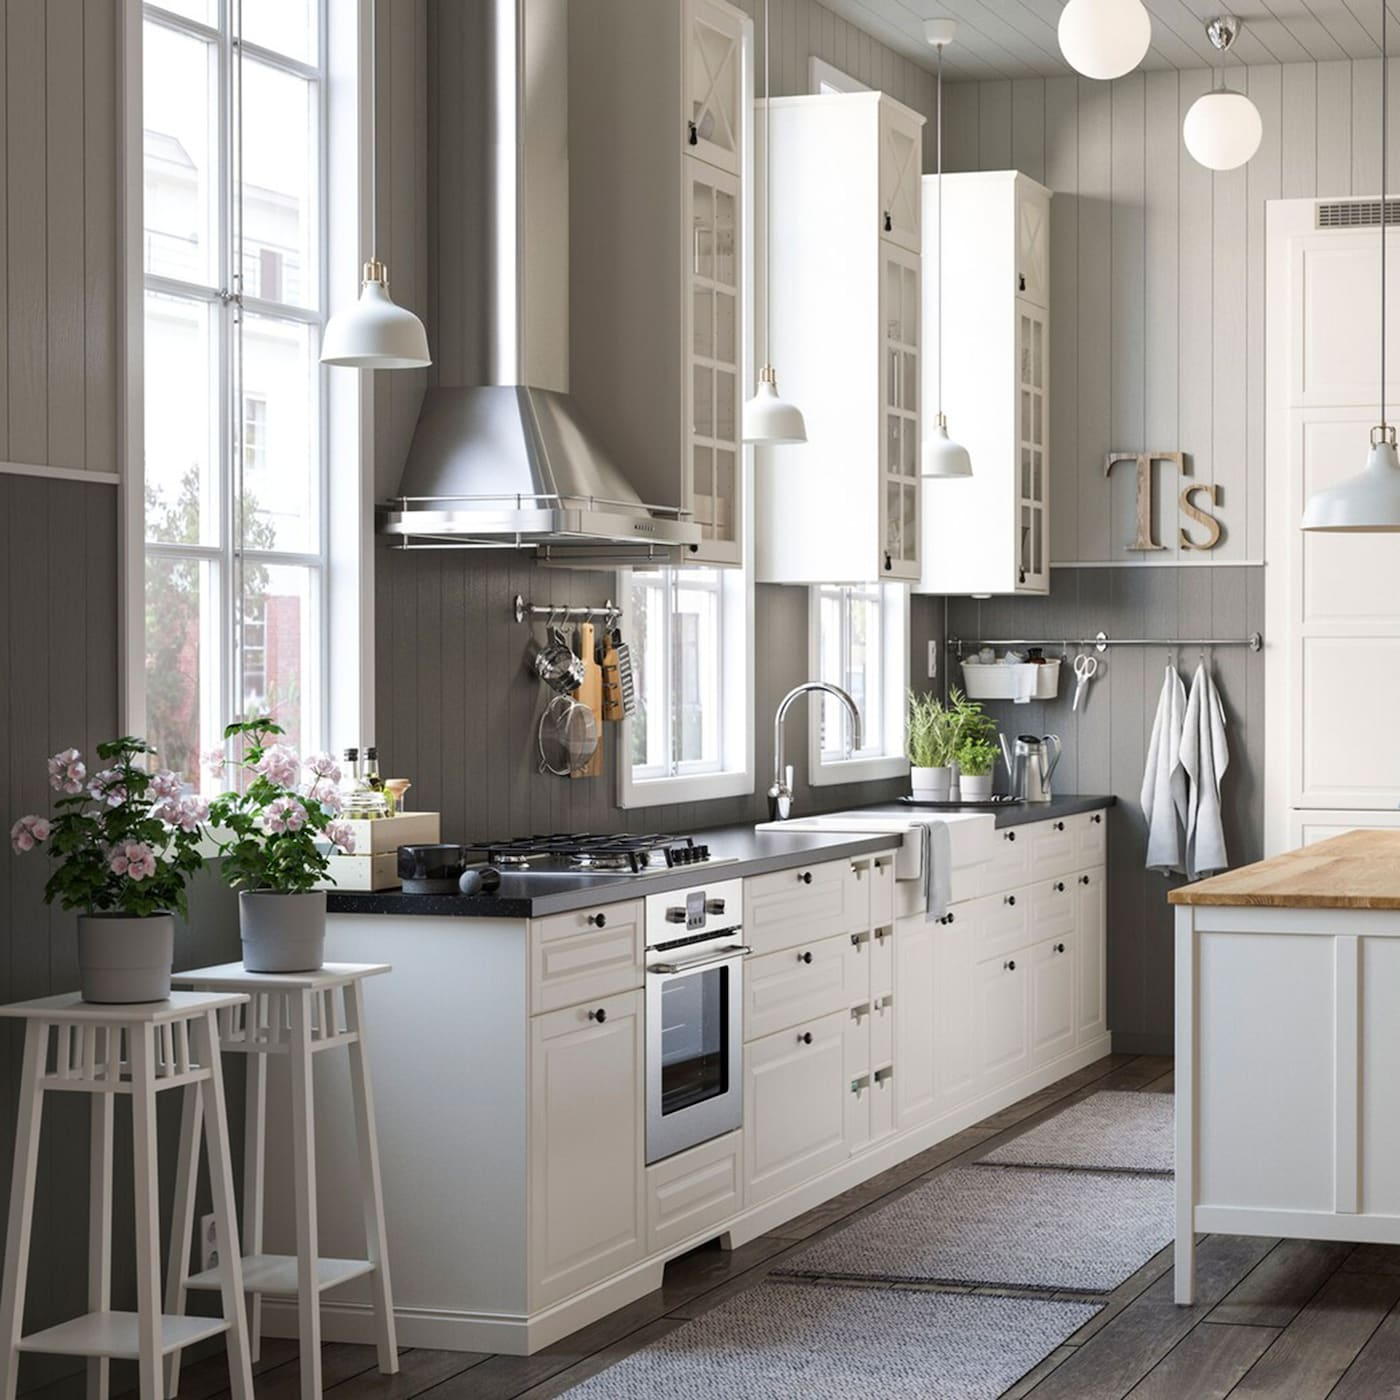 Ikea Ilot Cuisine: Countryside Kitchen In The City